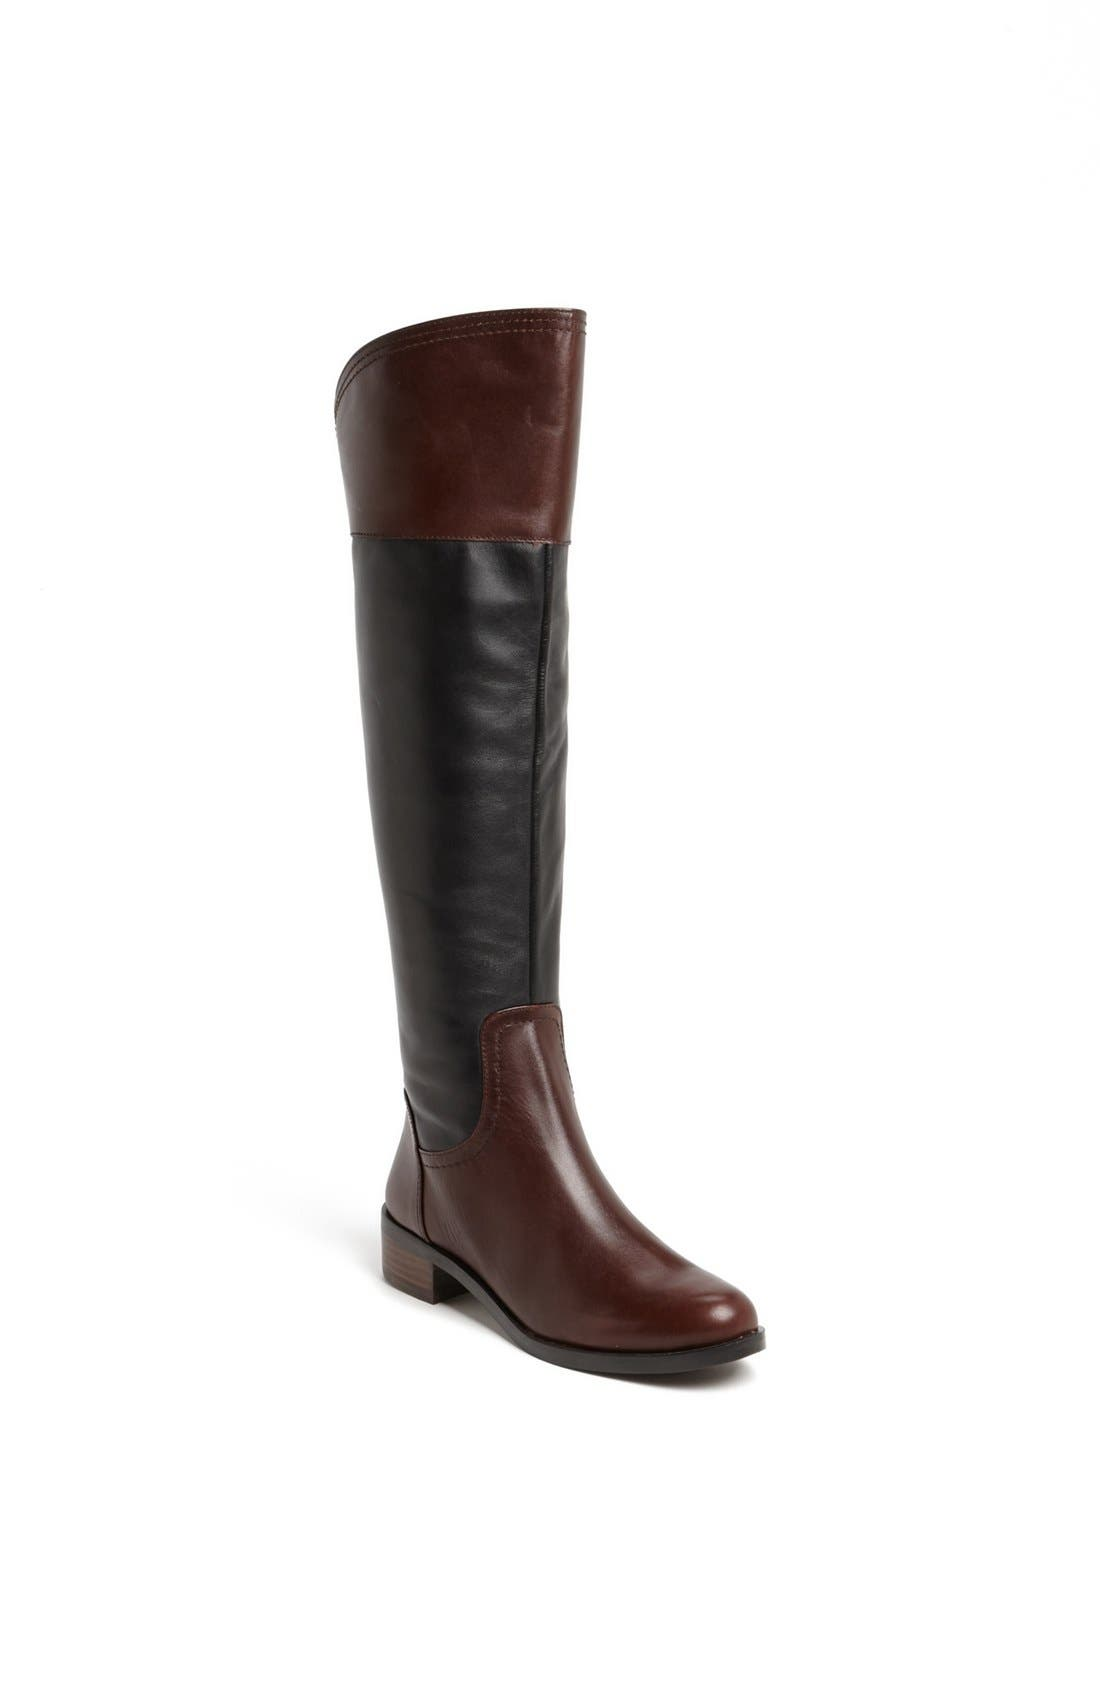 Main Image - Vince Camuto 'Vatero' Over the Knee Boot